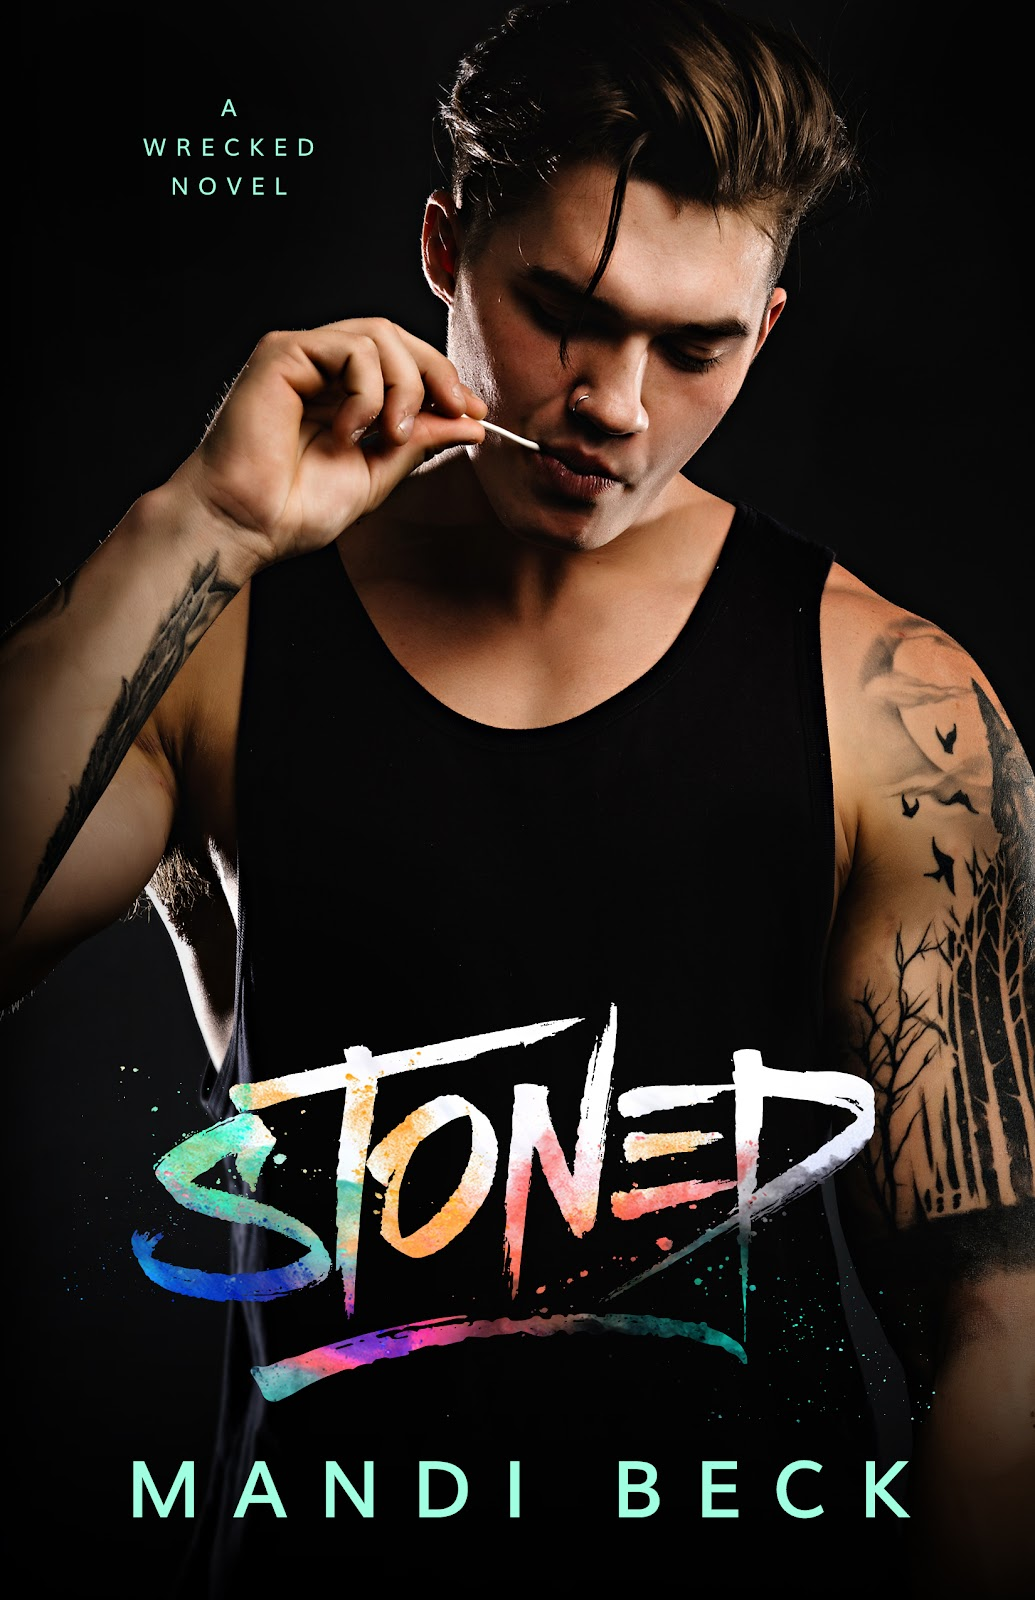 Stoned_FrontCover.jpg